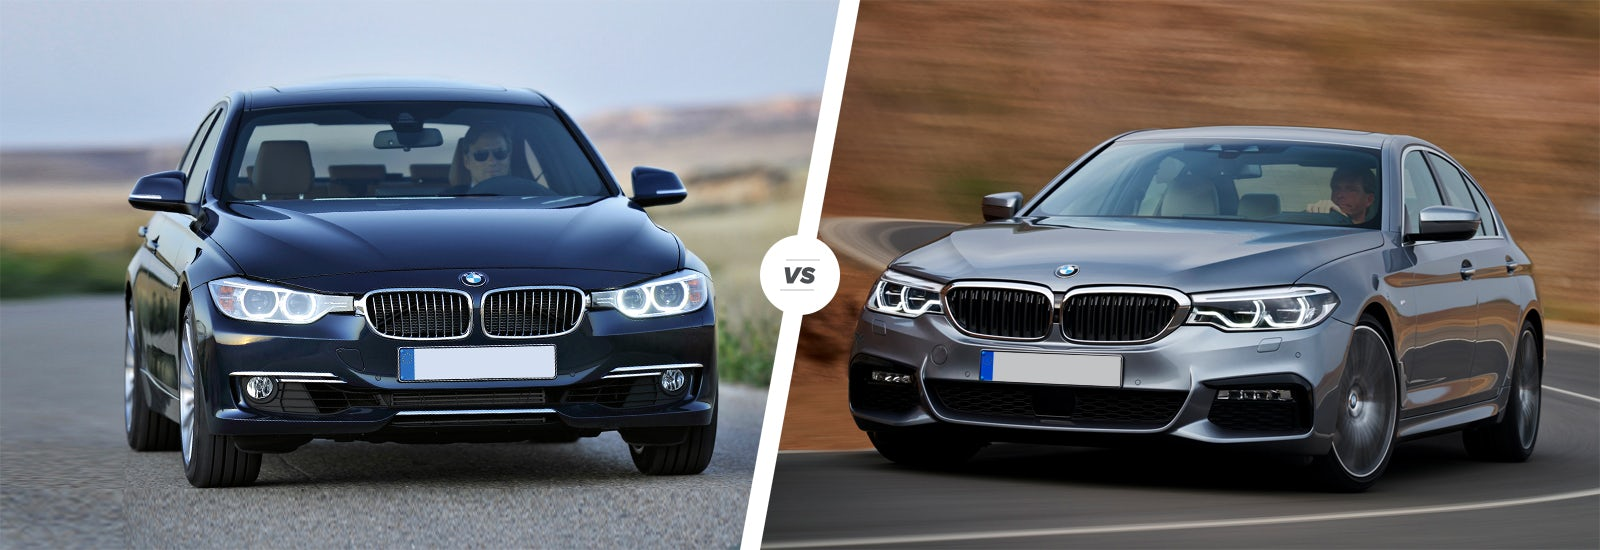 bmw 3 series vs 5 series which should you buy carwow. Black Bedroom Furniture Sets. Home Design Ideas